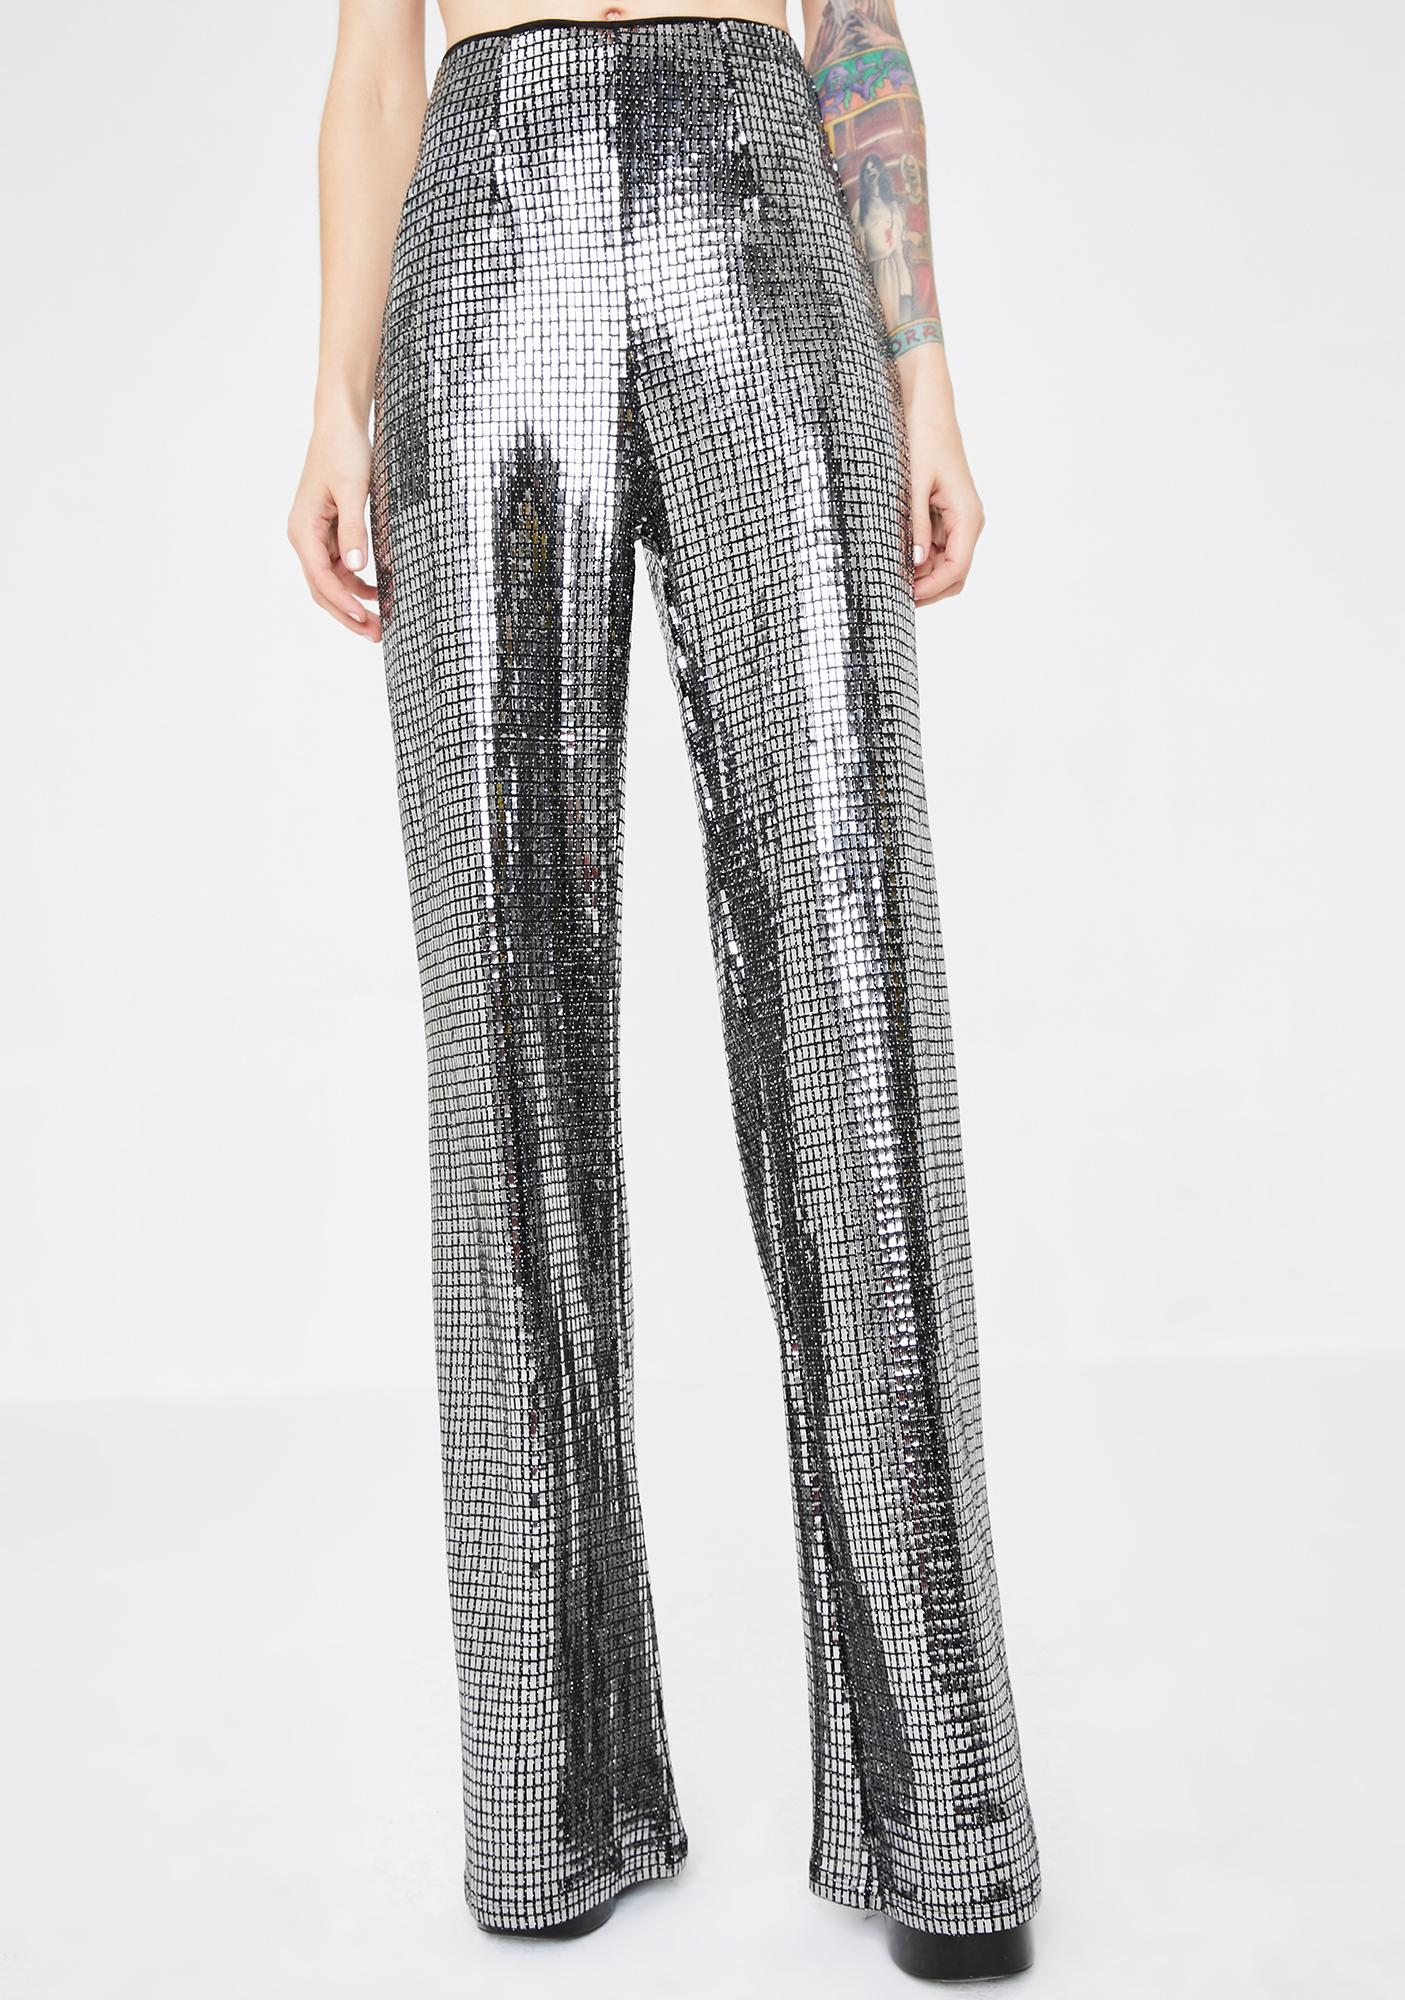 Kiki Riki Disco Heart Metallic Pants